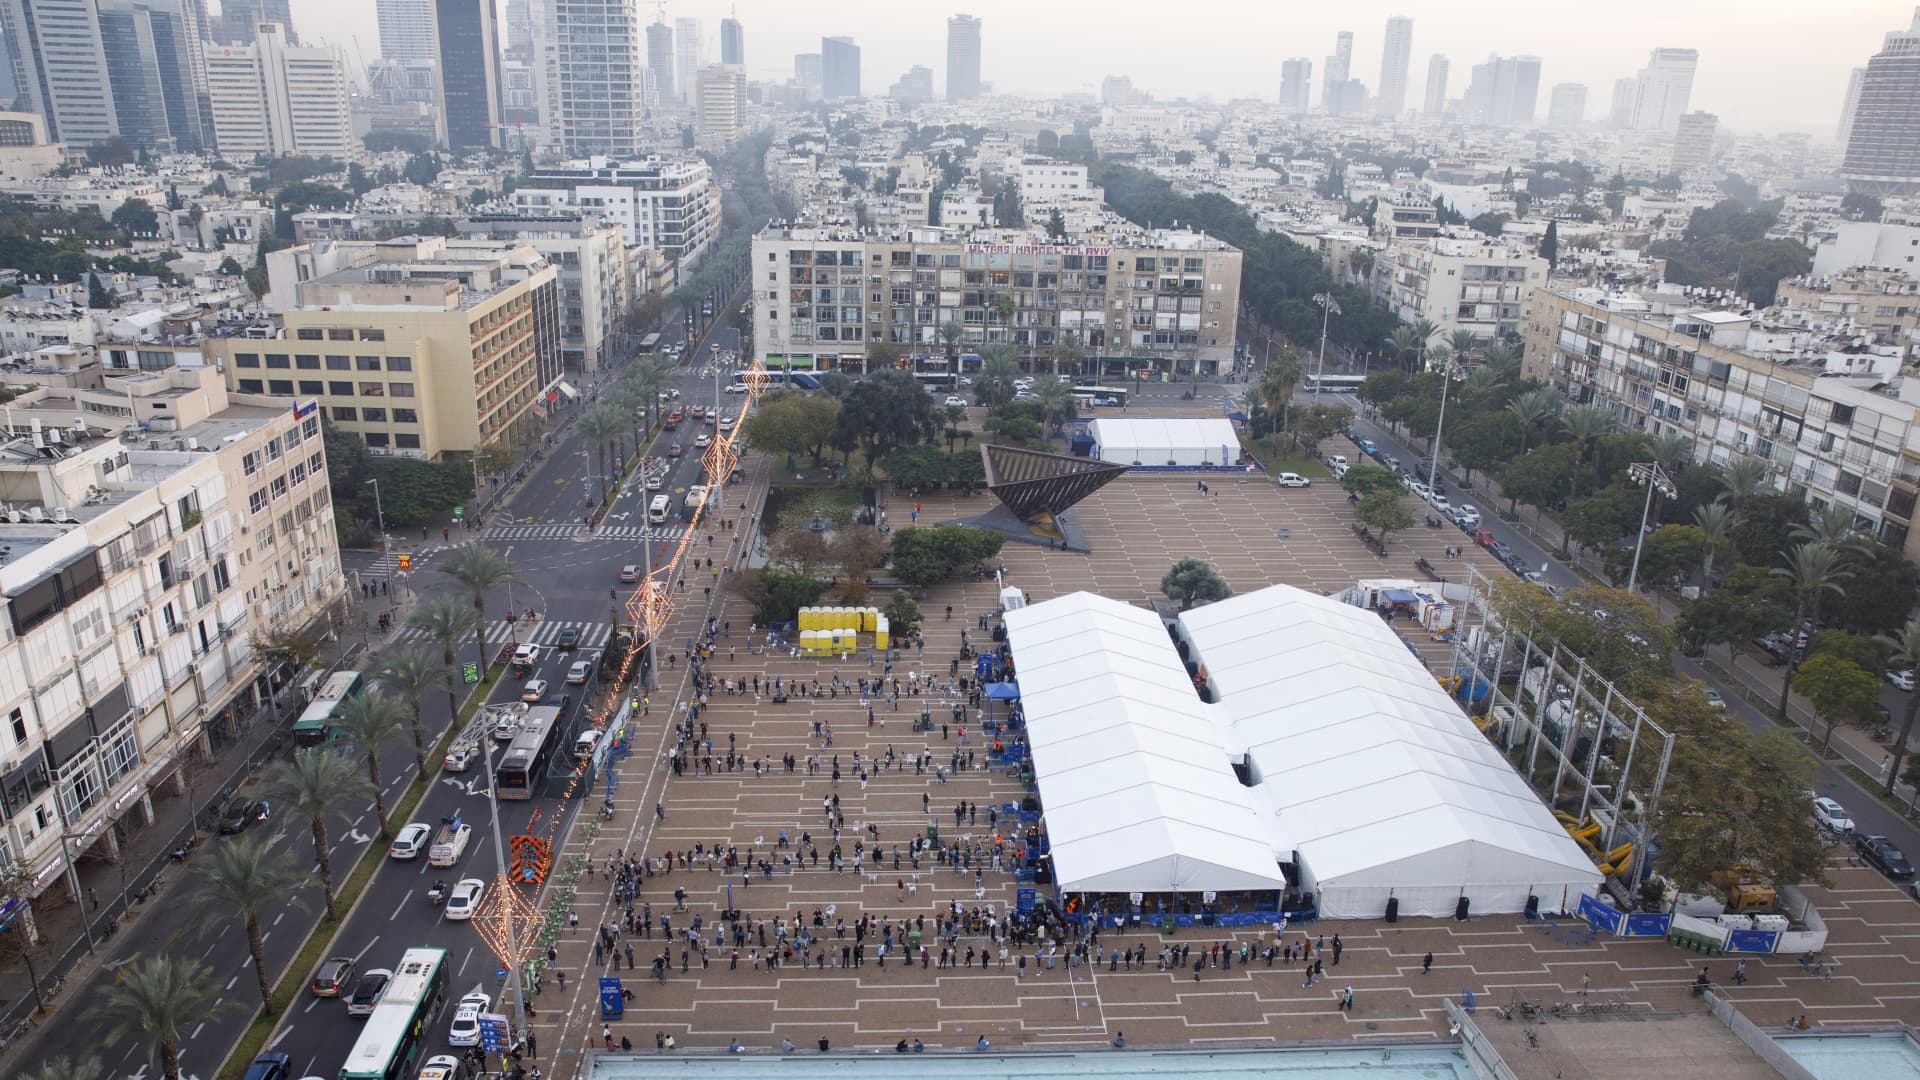 People queue outside a Covid-19 mass vaccination center at Rabin Sqaure in this aerial photograph taken in Tel Aviv, Israel, on Monday, Jan. 4, 2020. Israel plans to vaccinate 70% to 80% of its population by April or May, Health Minister Yuli Edelstein has said.